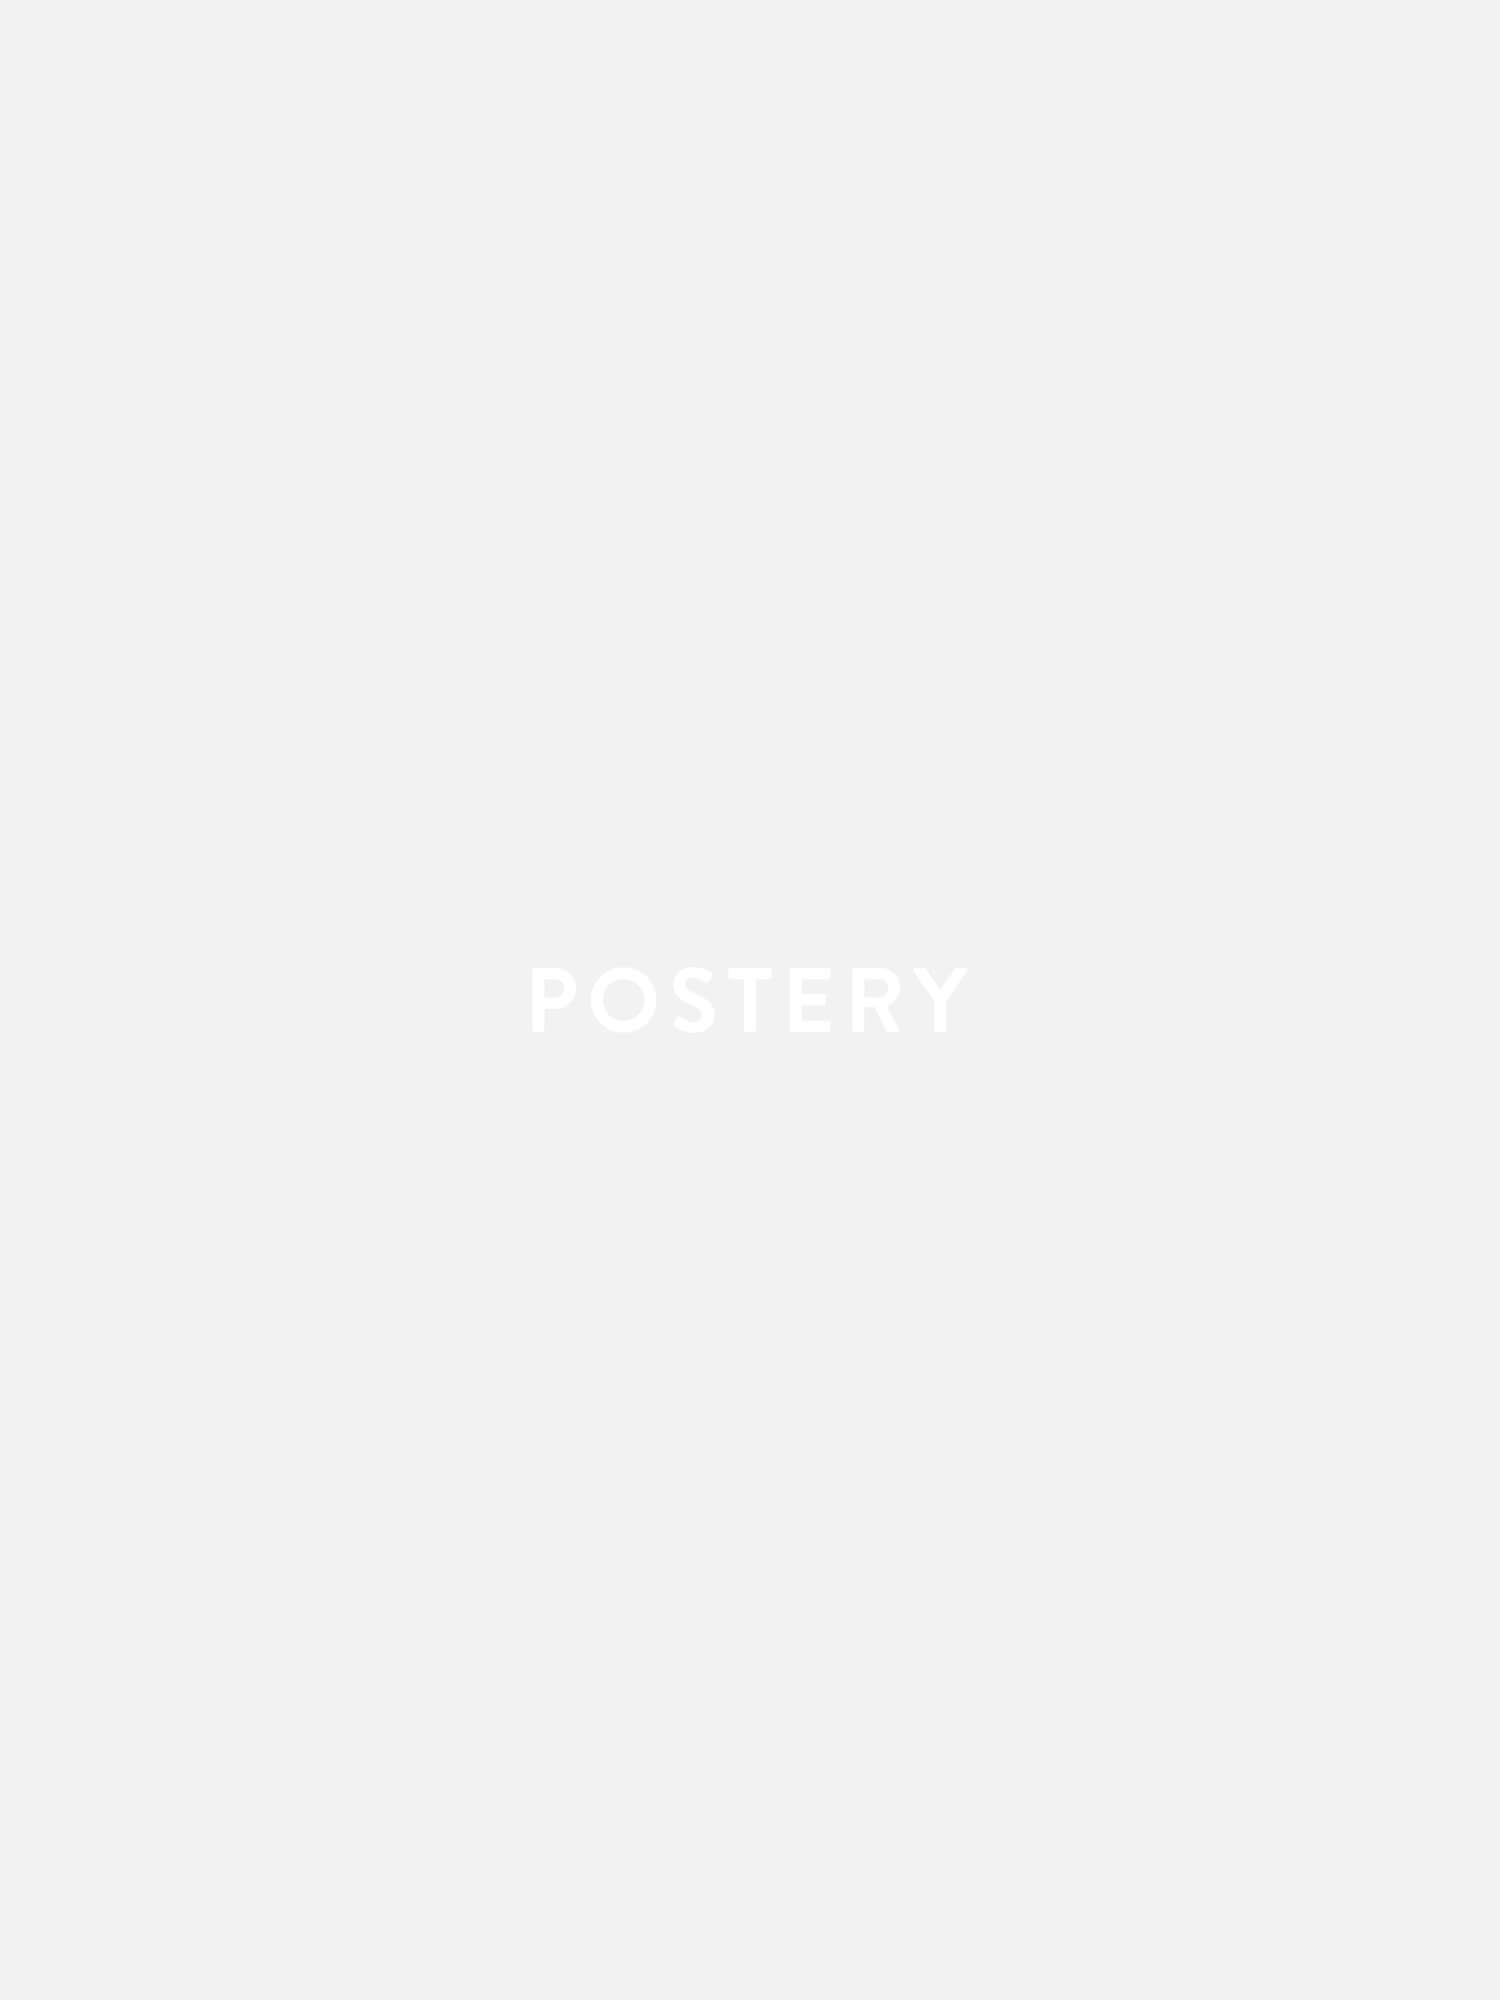 Make You Proud Poster